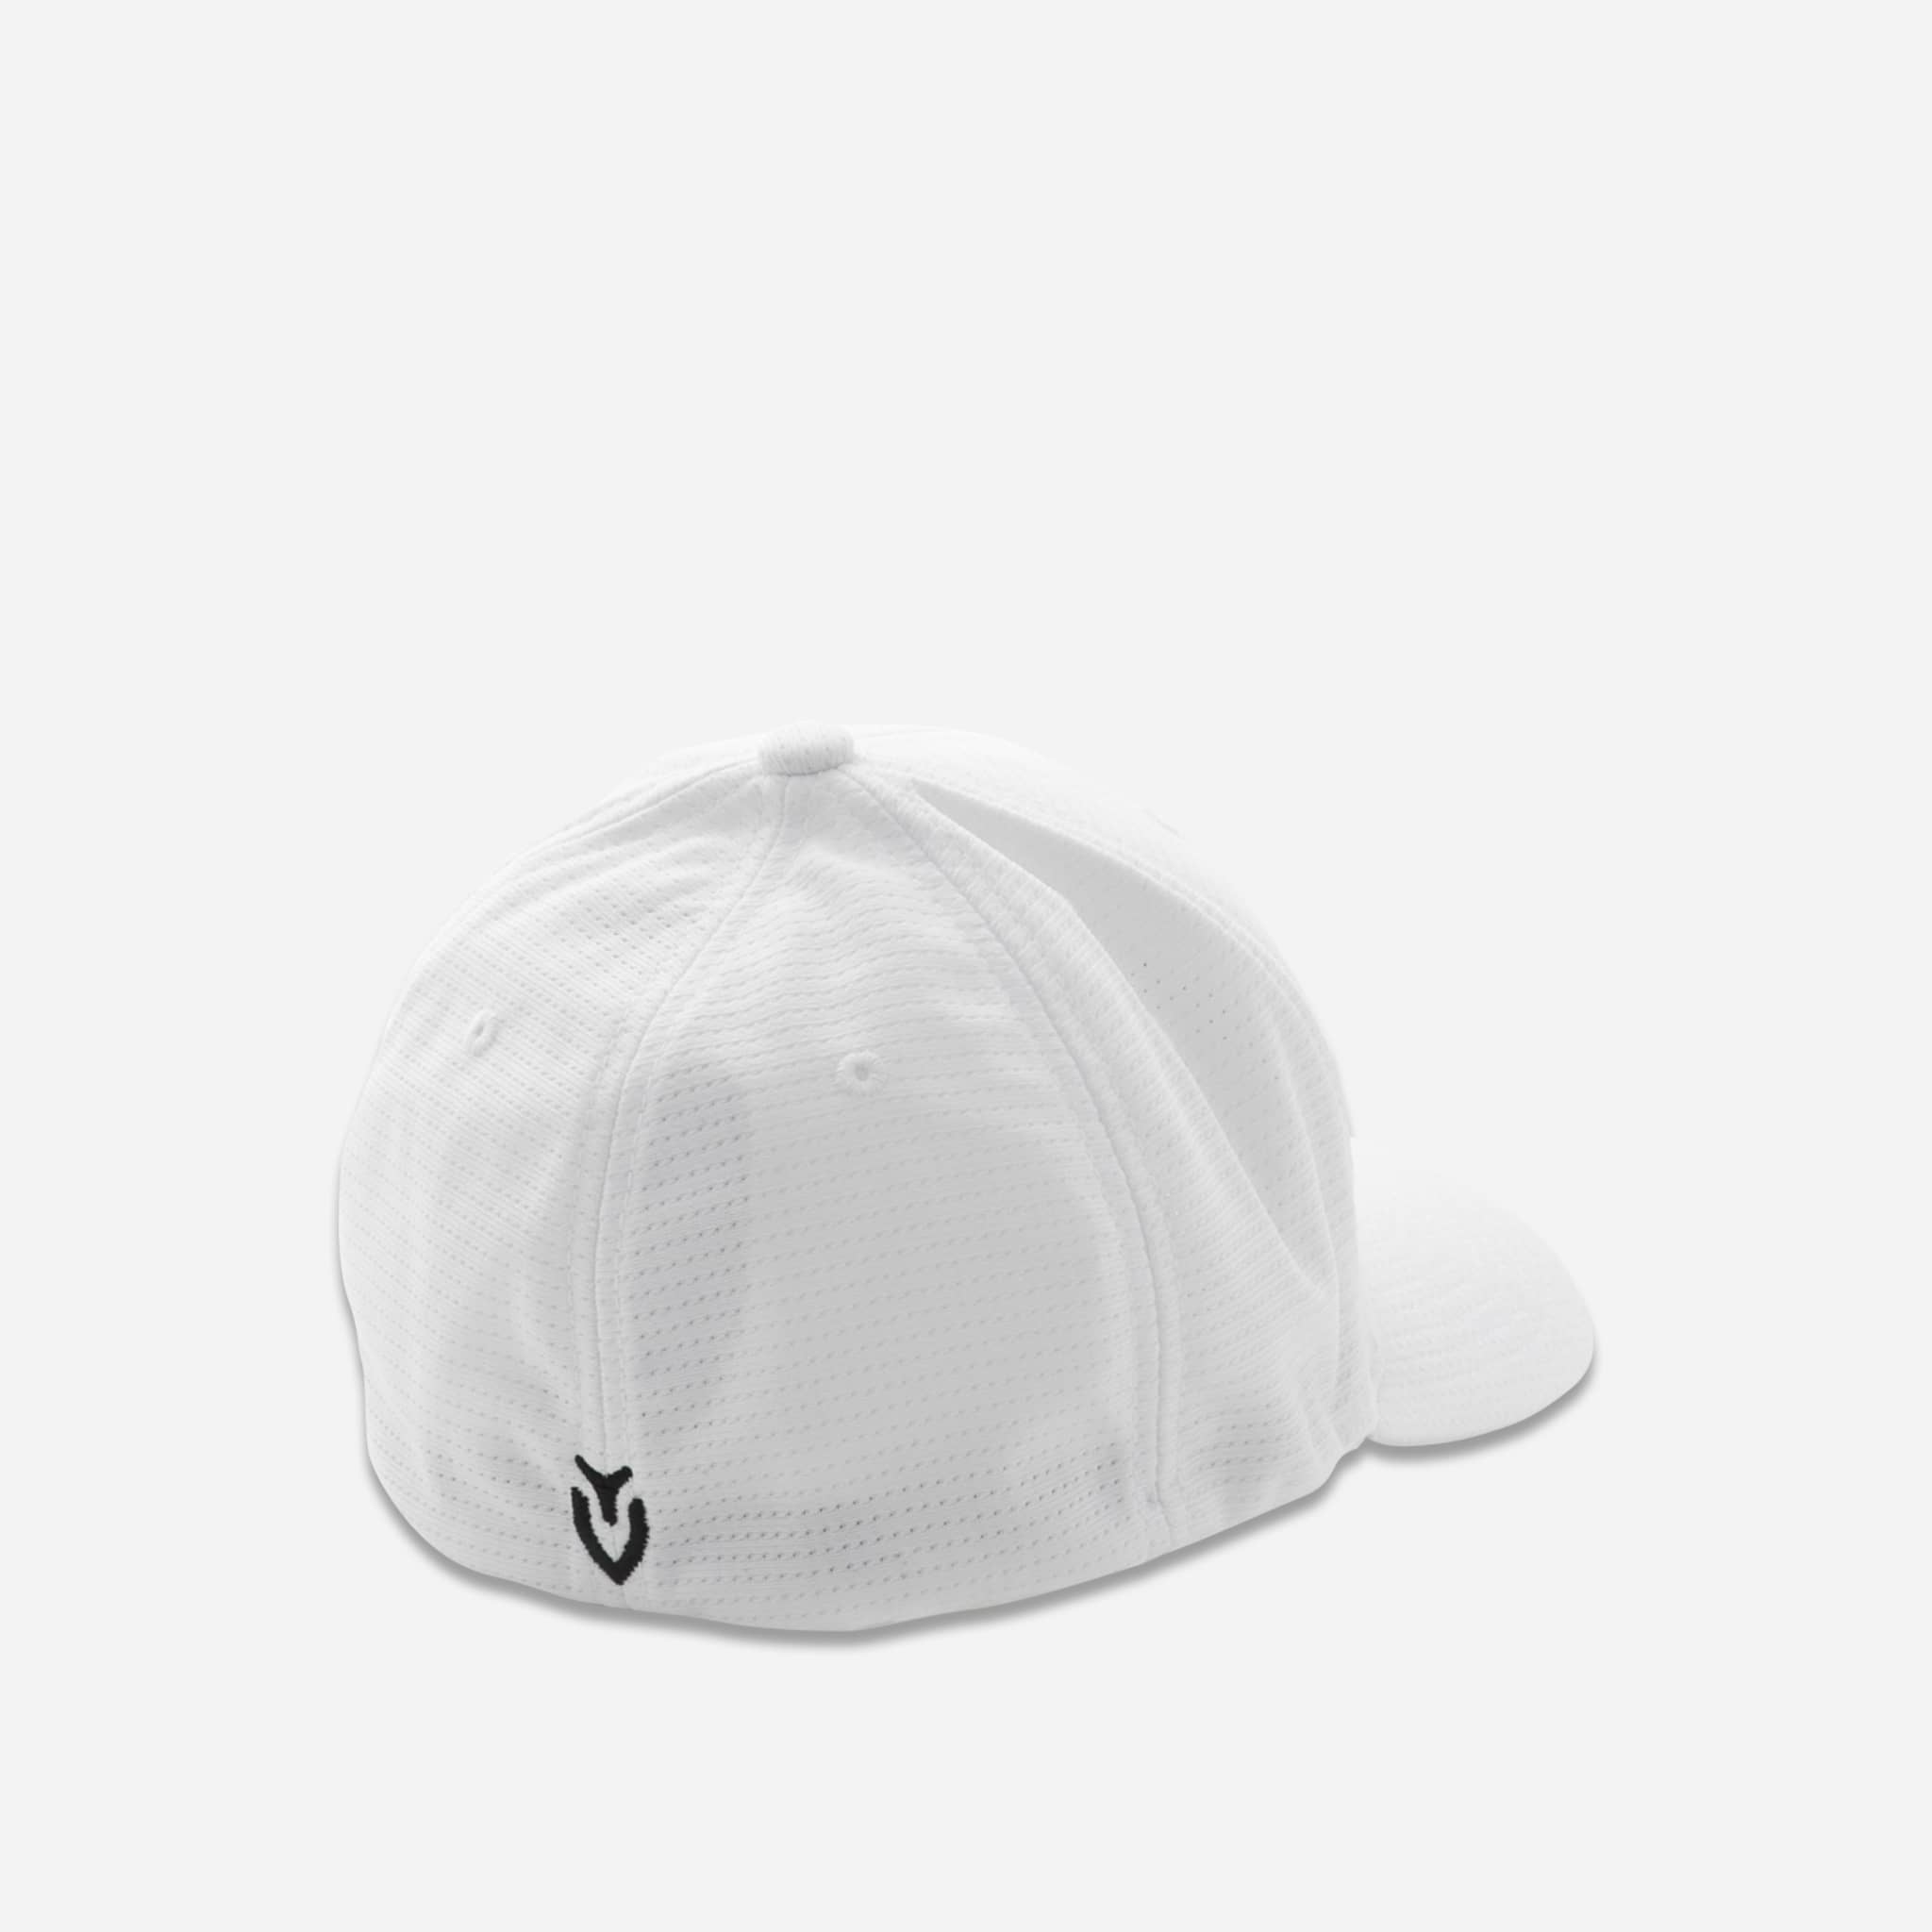 dbd15425dc4 Vessel Stretch Fitted Hat – VESSEL